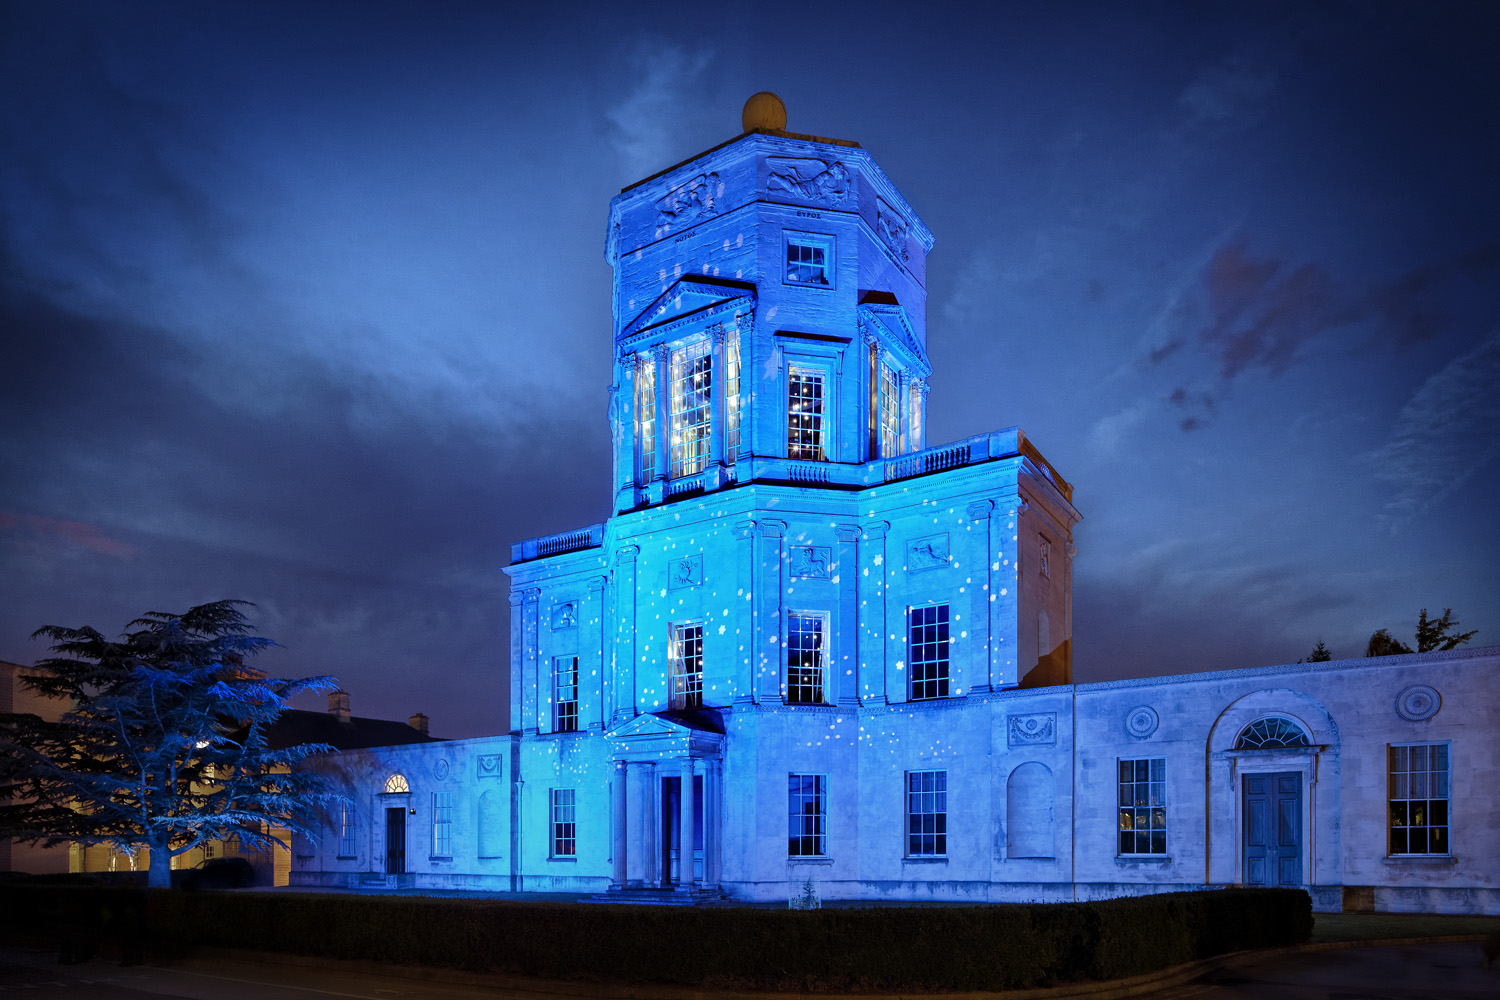 The Radcliffe Observatory building in Oxford lit up for the 2017 Night of Heritage Light.